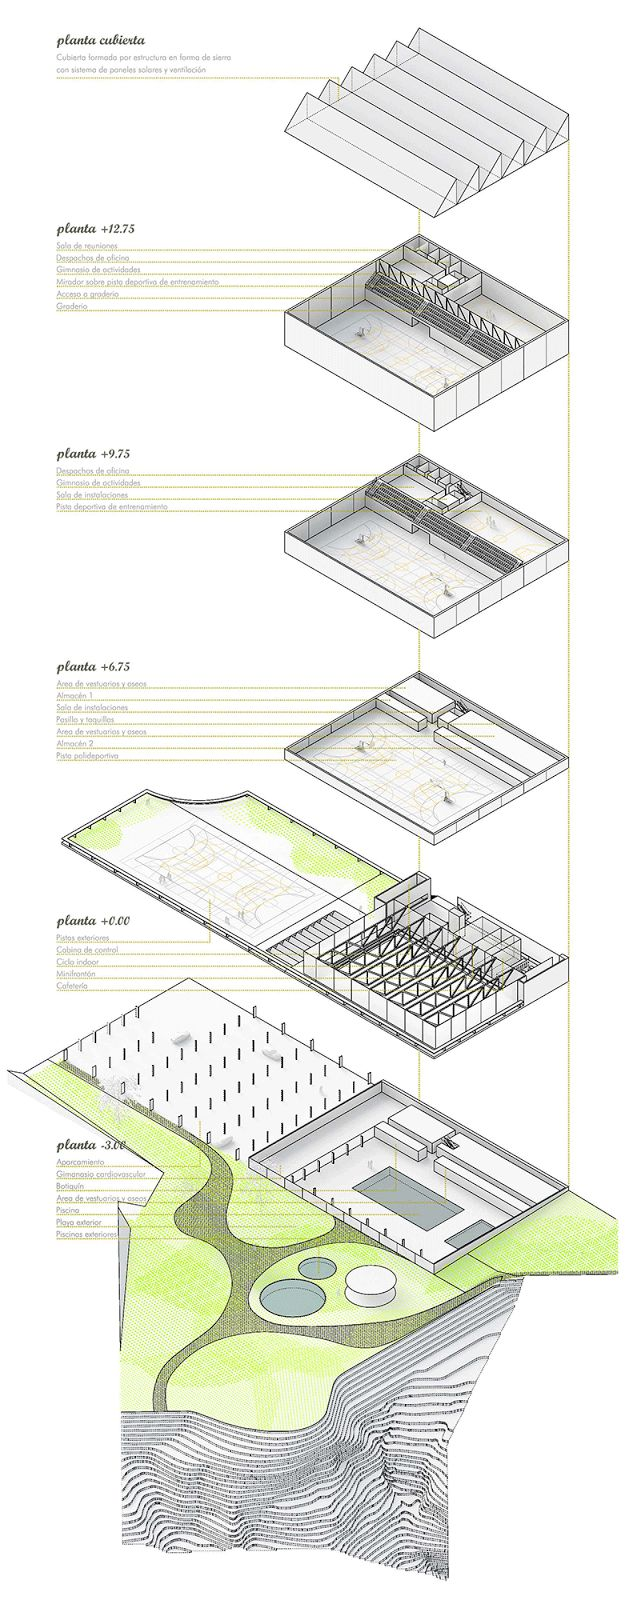 37 Best Arcaeological Drawing Images On Pinterest Architecture Circuit Board Fabrication From Natlus Urd Manufacturing Polideportivo En El Barrio Industrial De Altza San Sebastin Miguel Ubarrechena